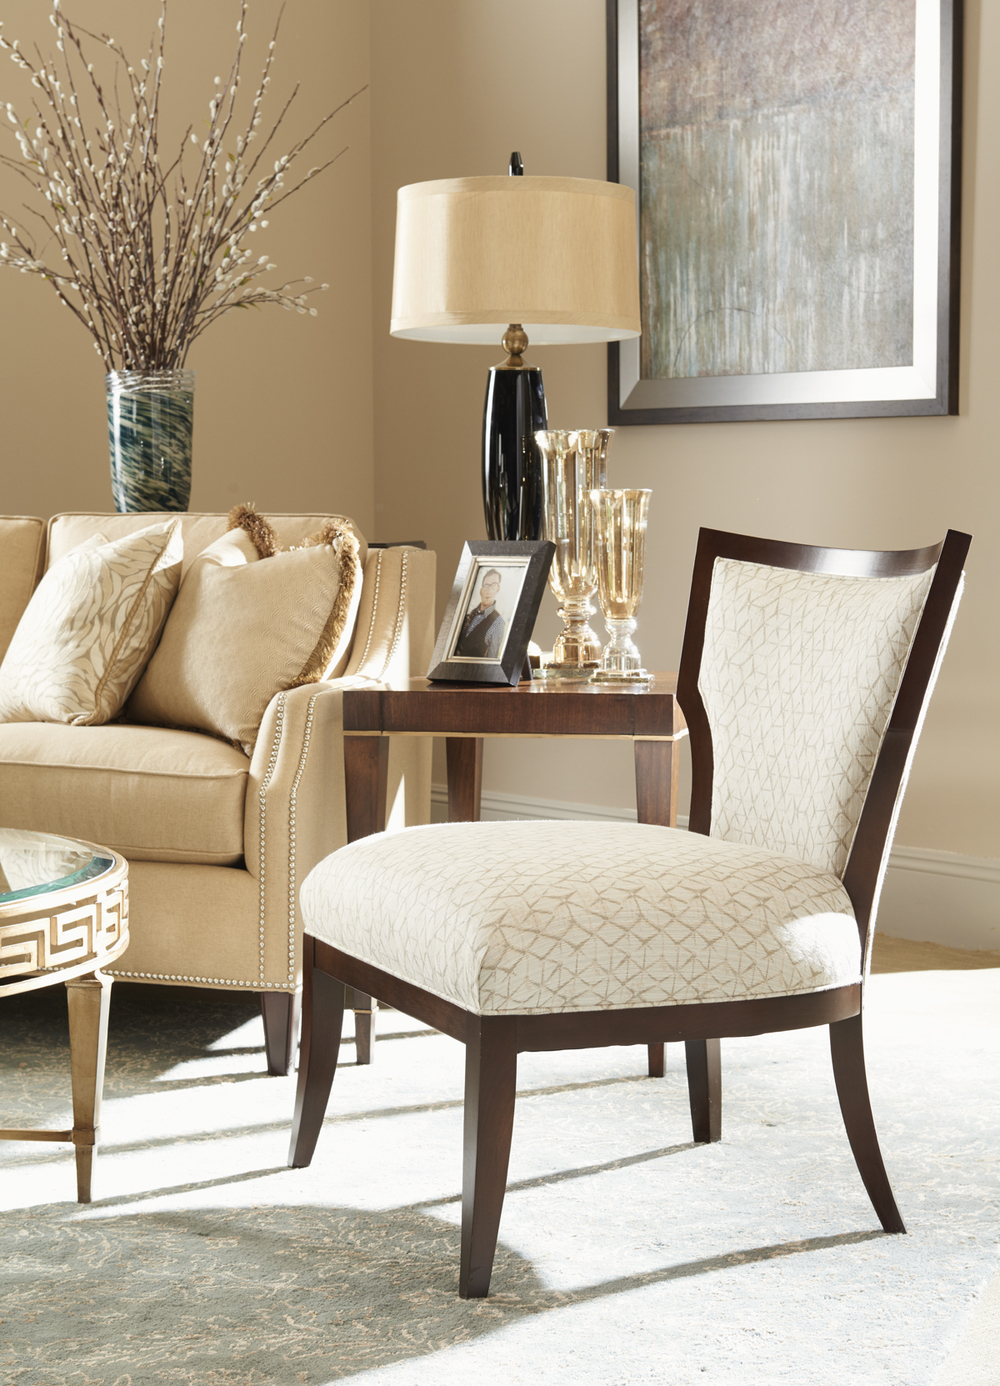 LEXINGTON HOME BRANDS - Gigi Chair